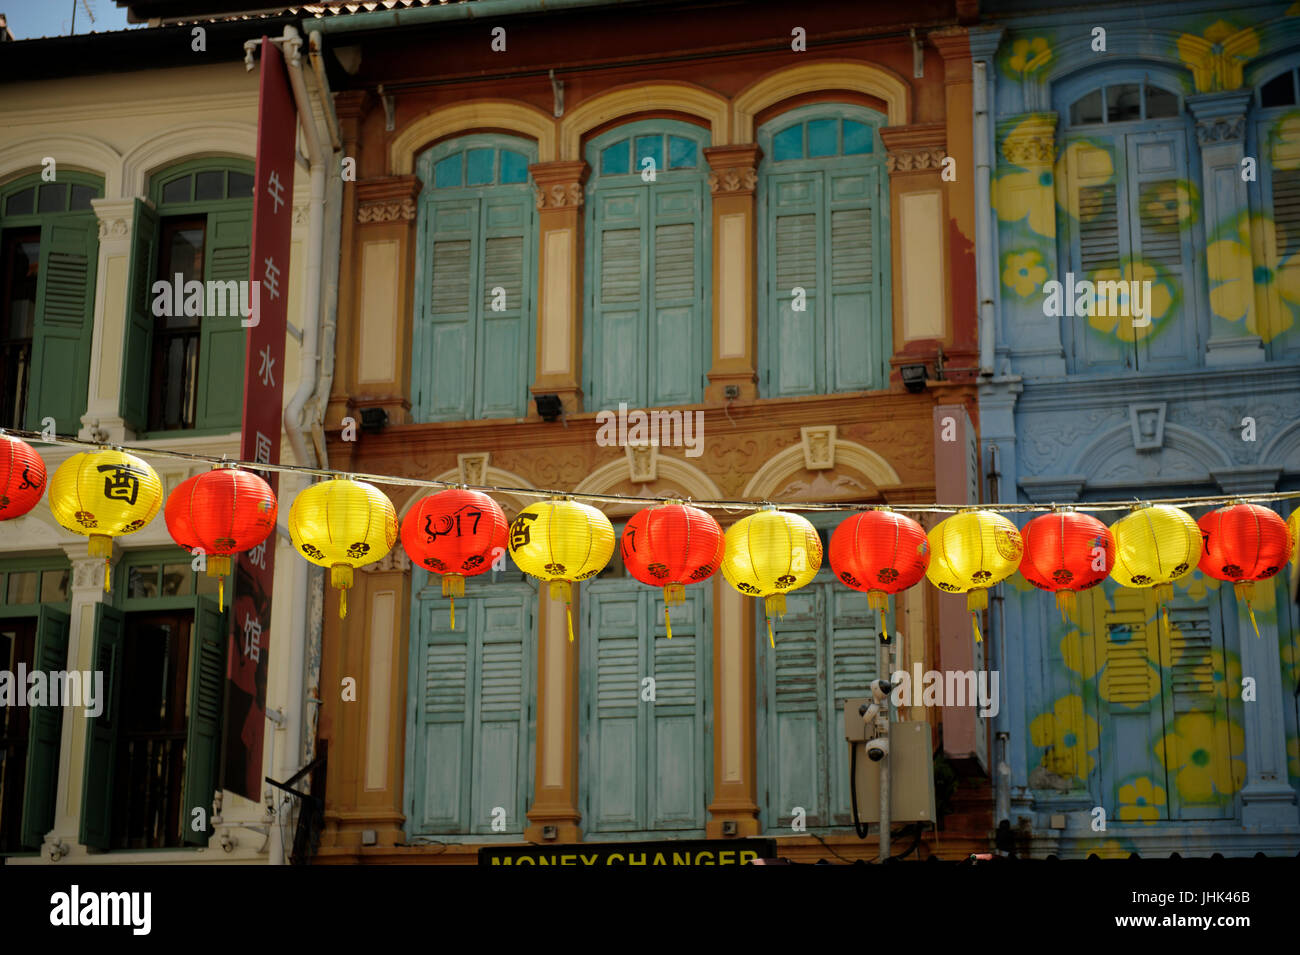 Chinese lanterns in Pagoda Street, with traditional shophouse upper storey frontages in background. Chinatown, Singapore Stock Photo